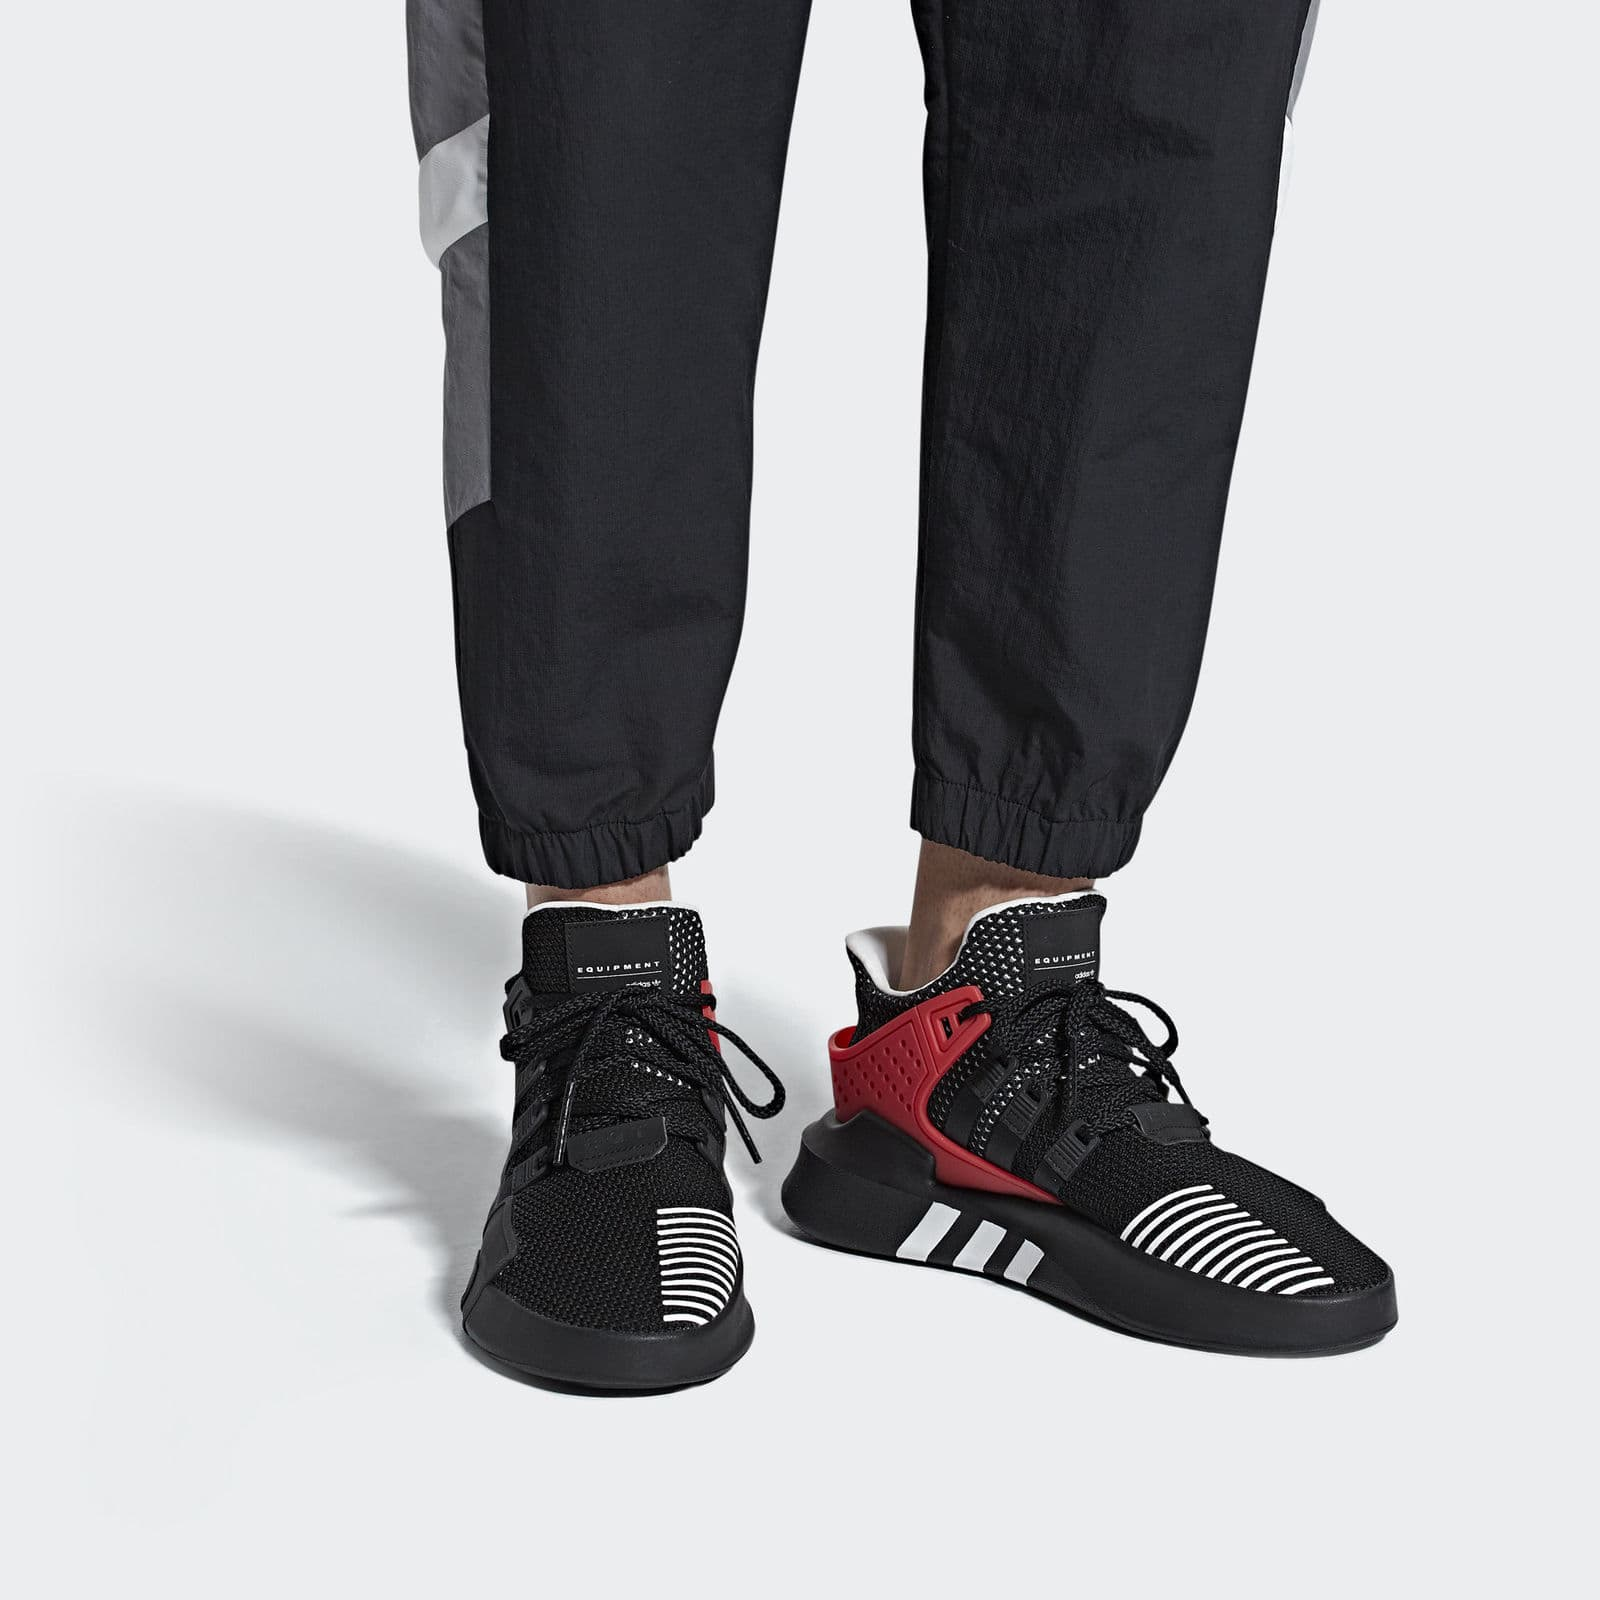 meet 0a1bd 0a1c1 ... 42% off+Extra 20% off Adidas EQT Bask ADV Shoes Men s( adidas EQT BASK  ADV GREY ONE F17 GREY ONE F17 sub green ...